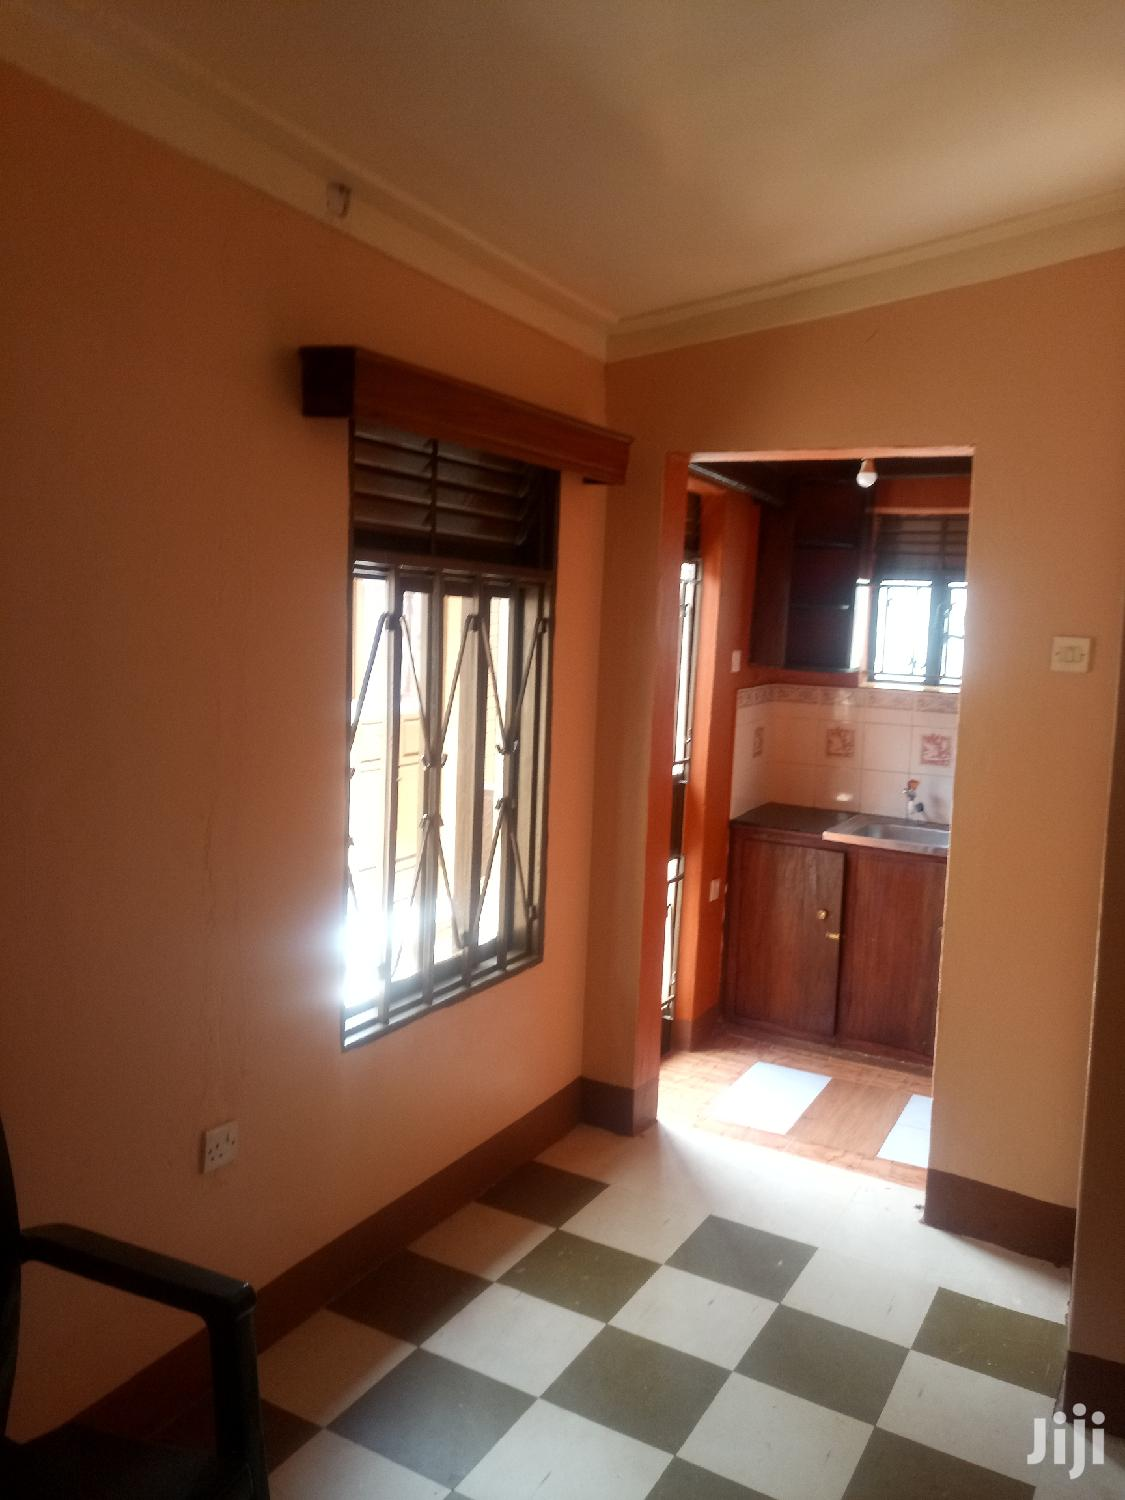 Mutungo Single Room House for Rent | Houses & Apartments For Rent for sale in Kampala, Central Region, Uganda